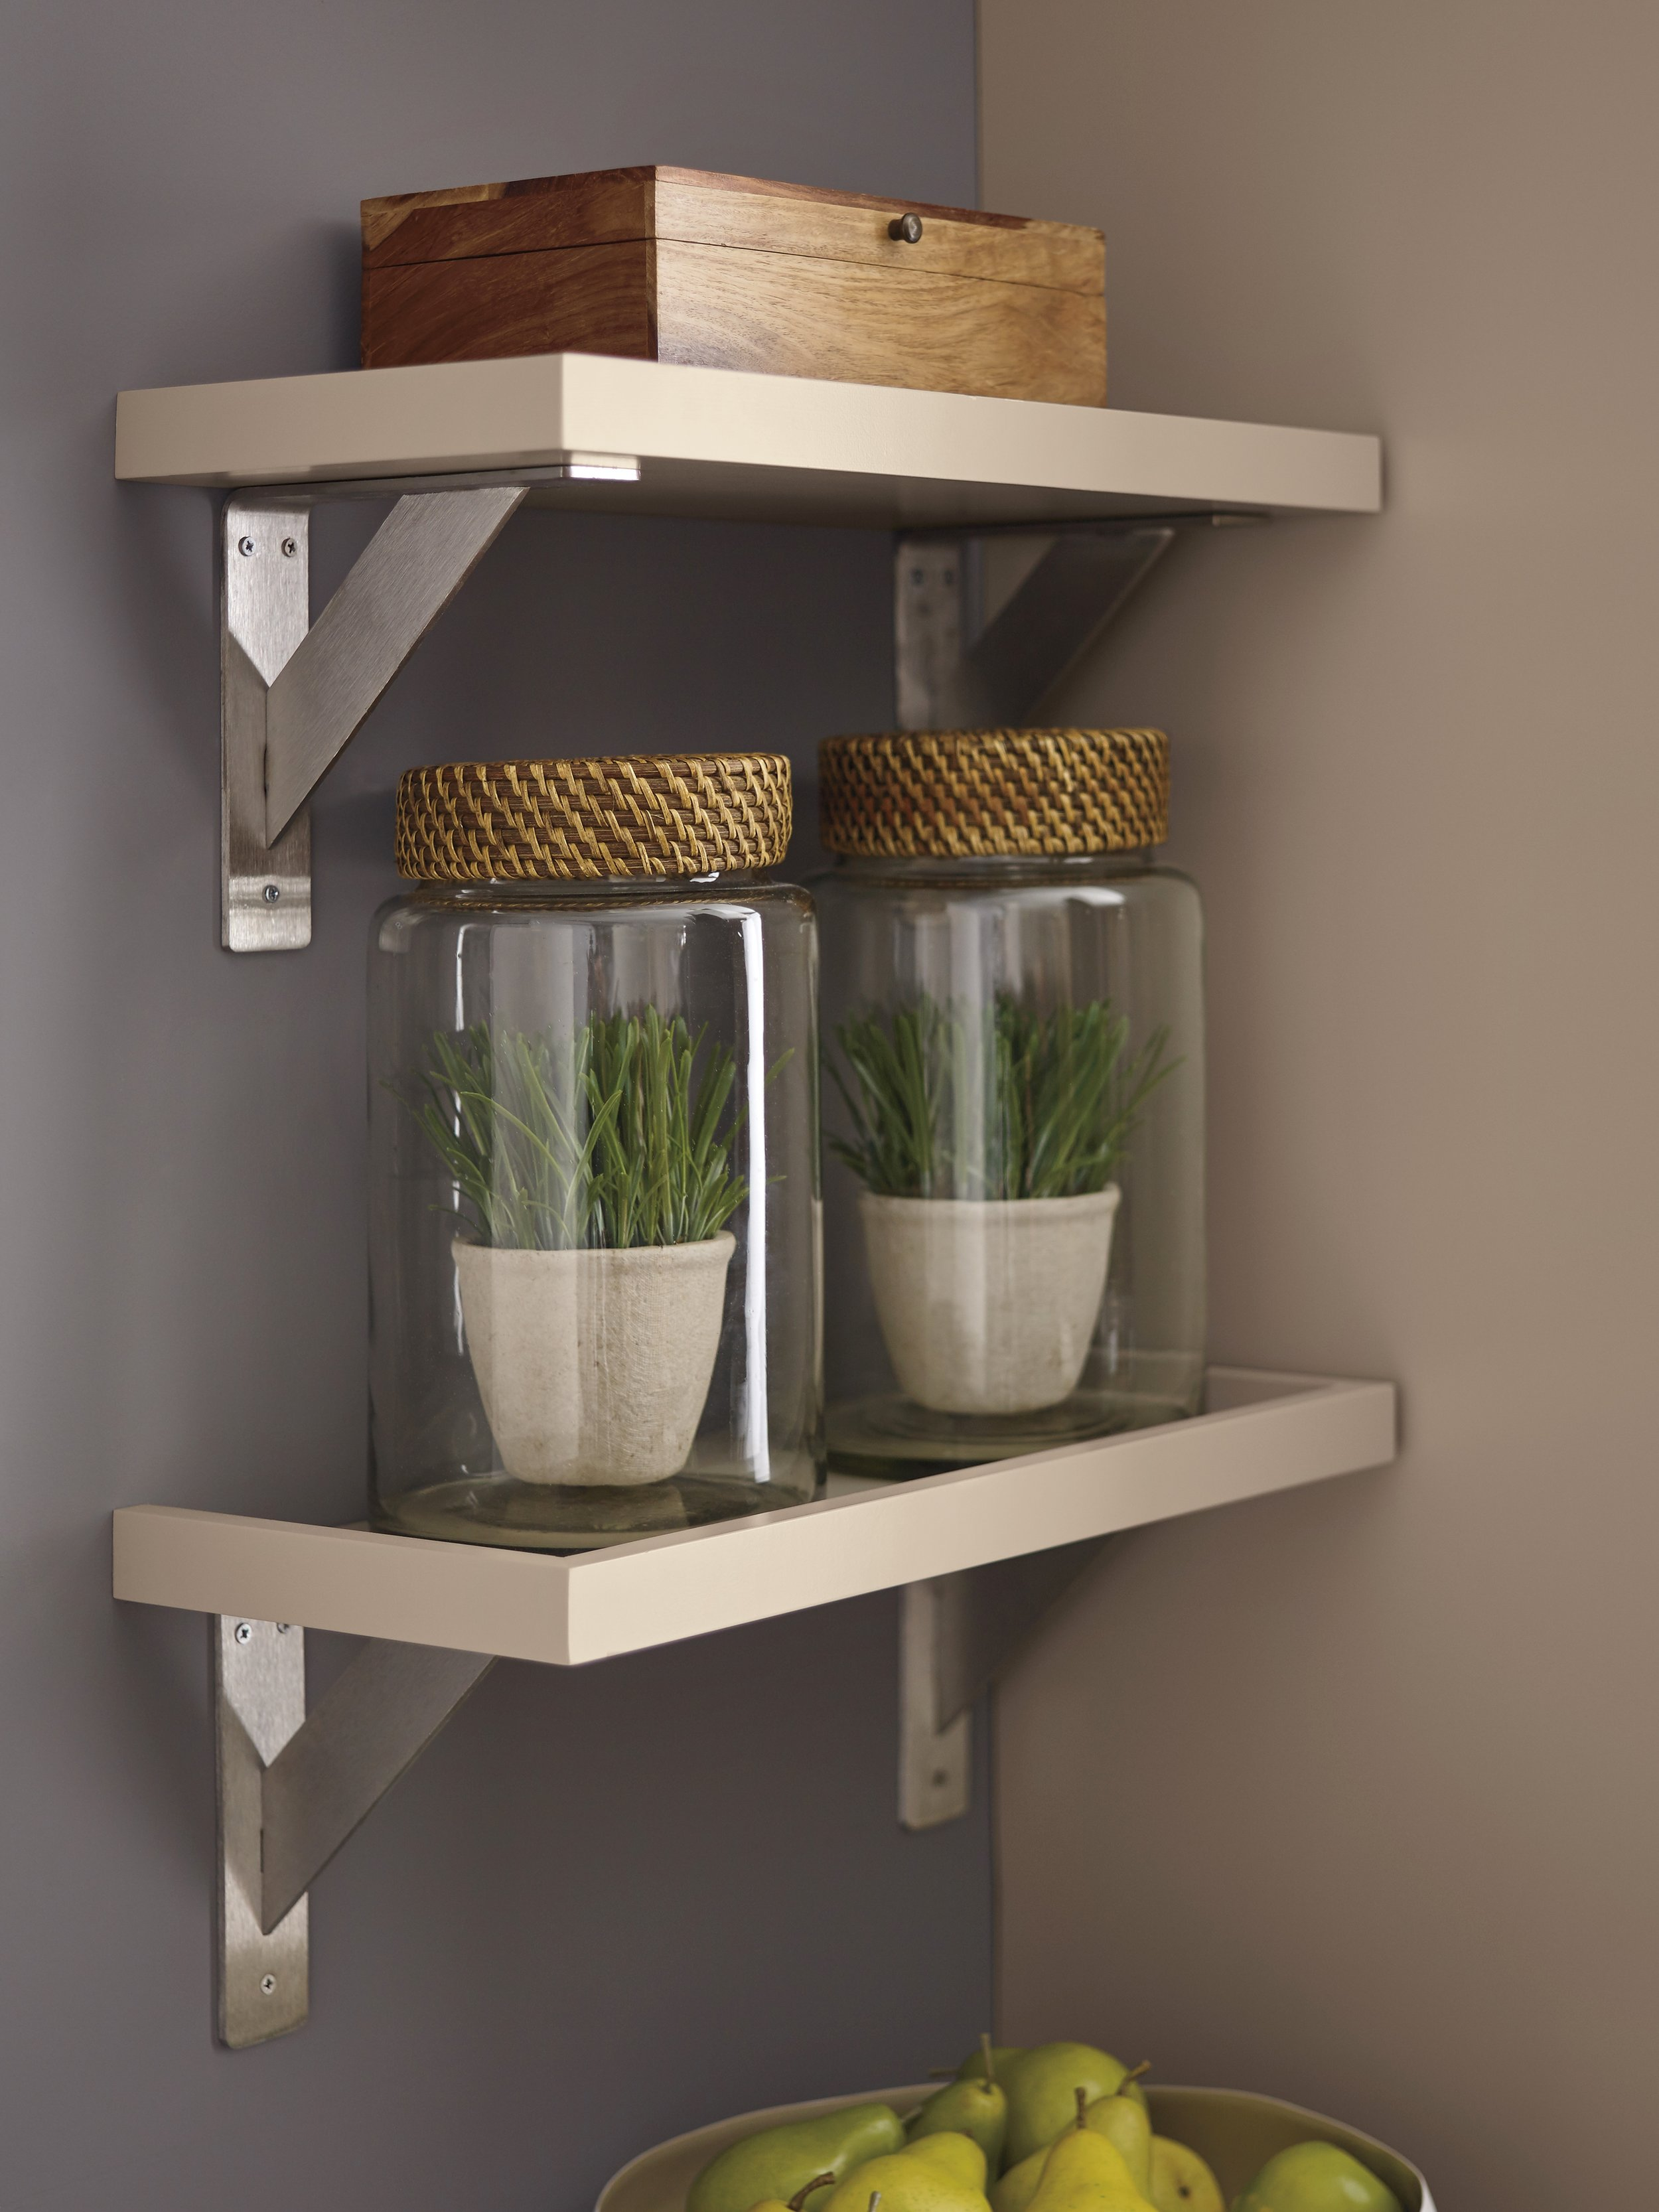 Nicole Janes Design Diamond Cabinetry Off White Kitchen Floating Open Shelves